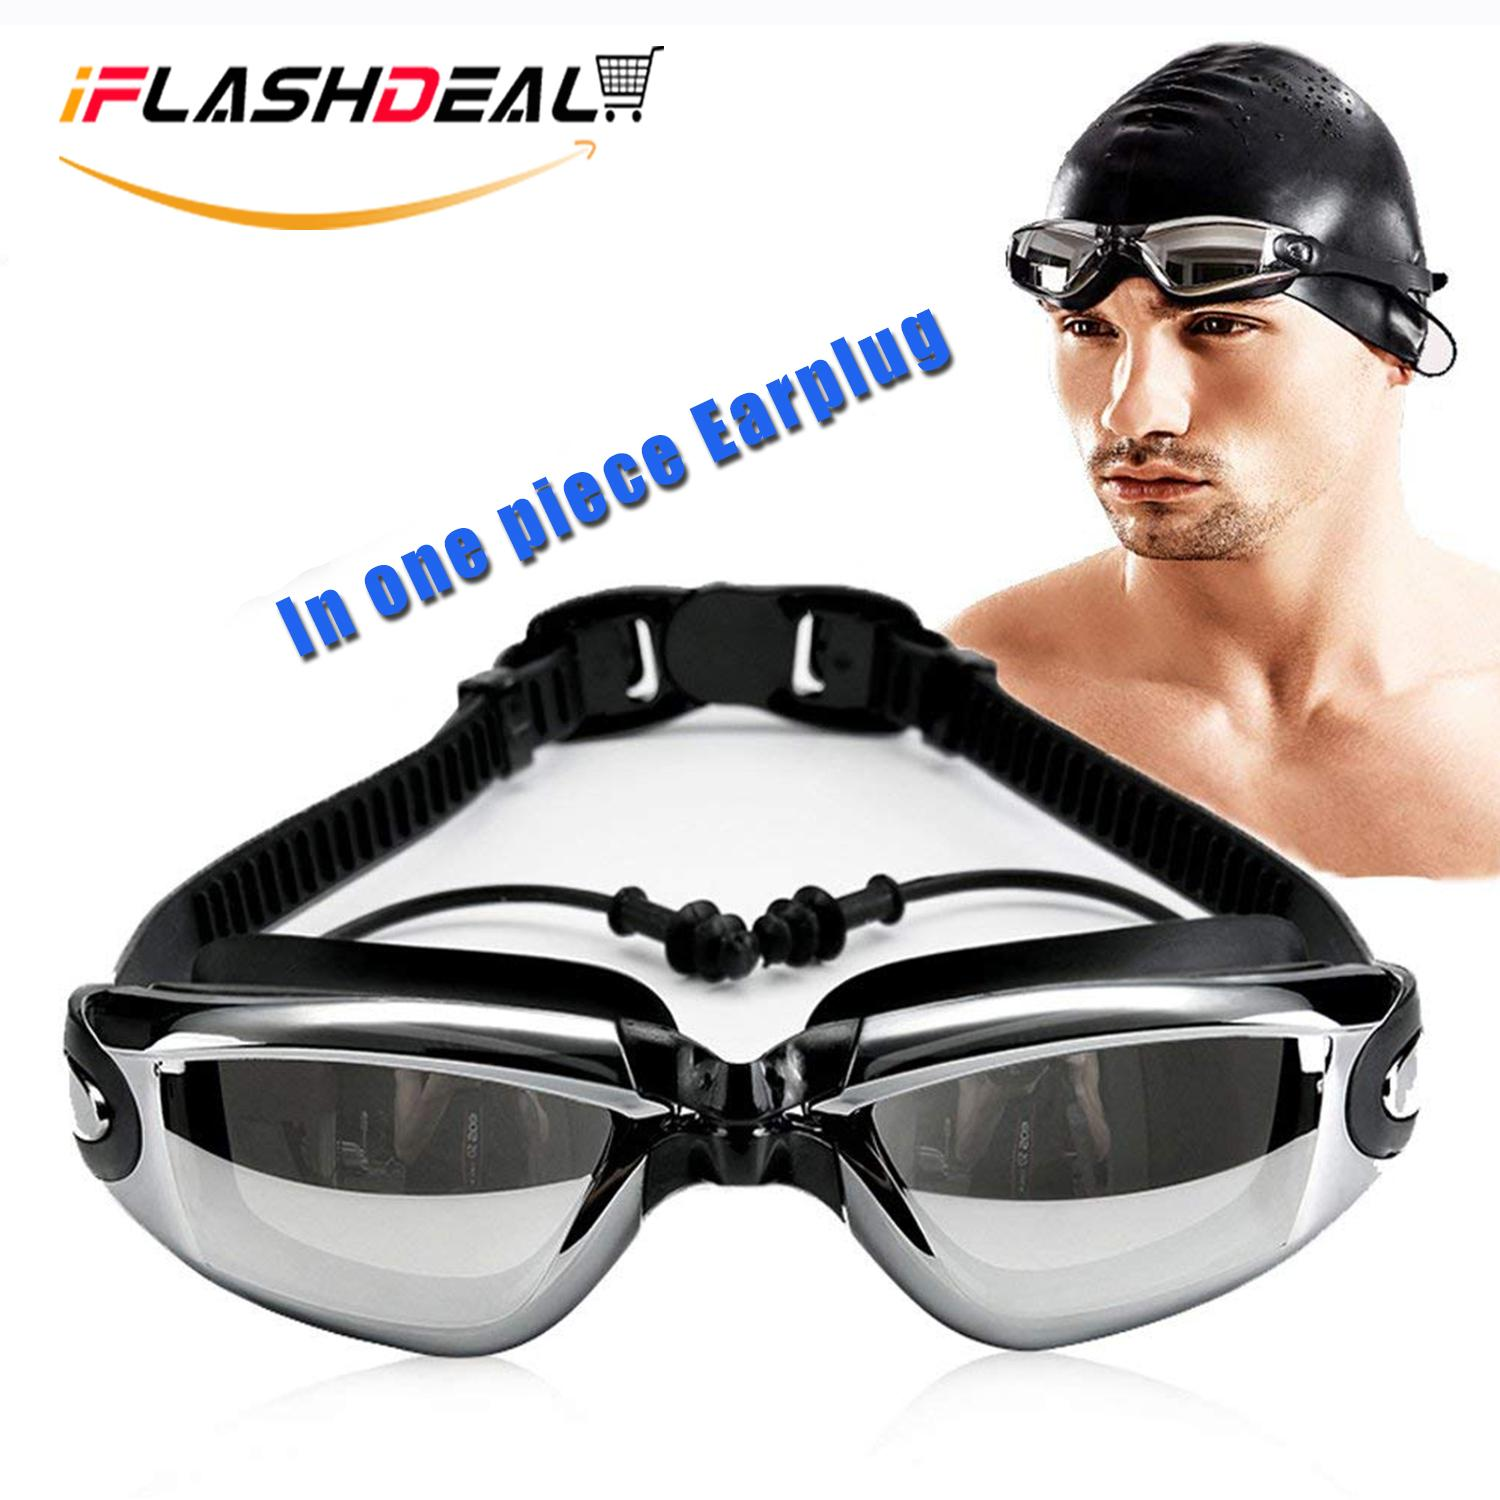 93b73062887c iFlashDeal Swimming Goggles Swim Goggles for Adult Men Women Youth Kids  Child Mirrored   Clear Anti